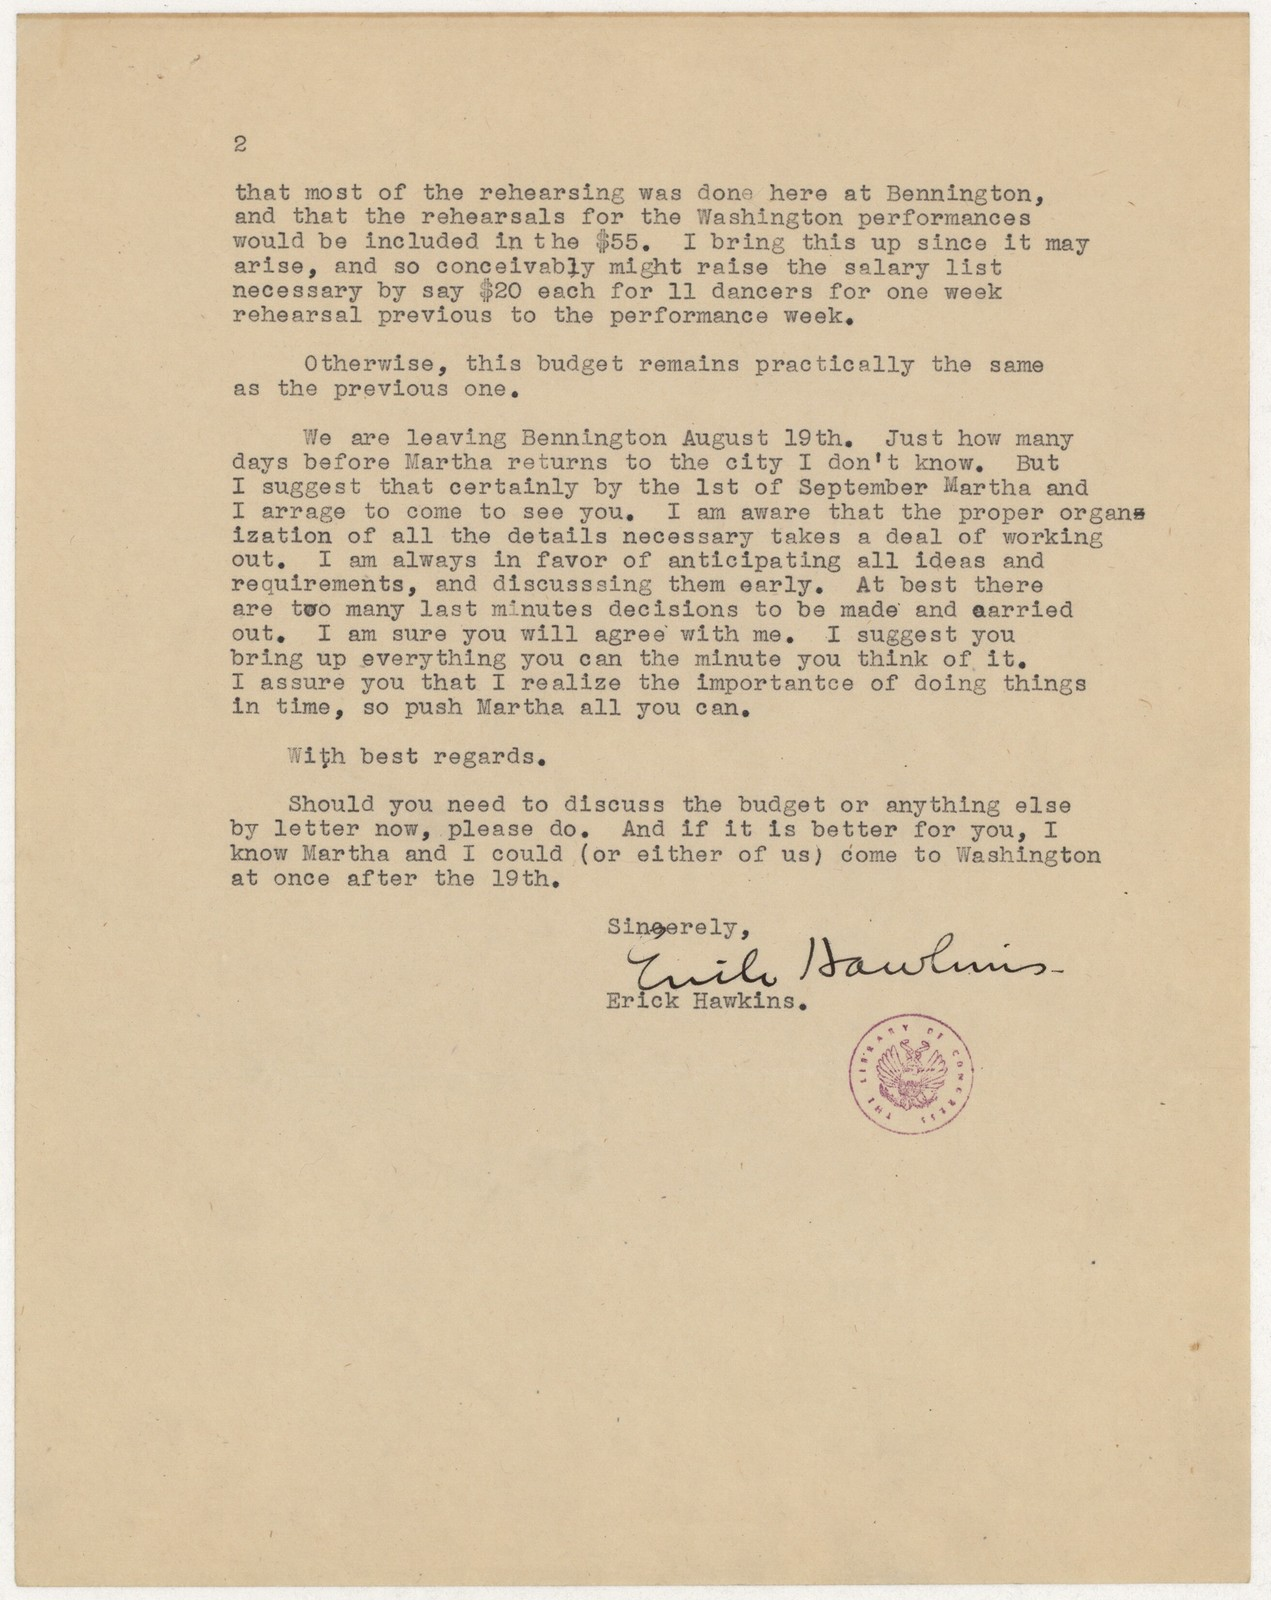 [ Letter from Erick Hawkins to Harold Spivacke, August 16, 1944]